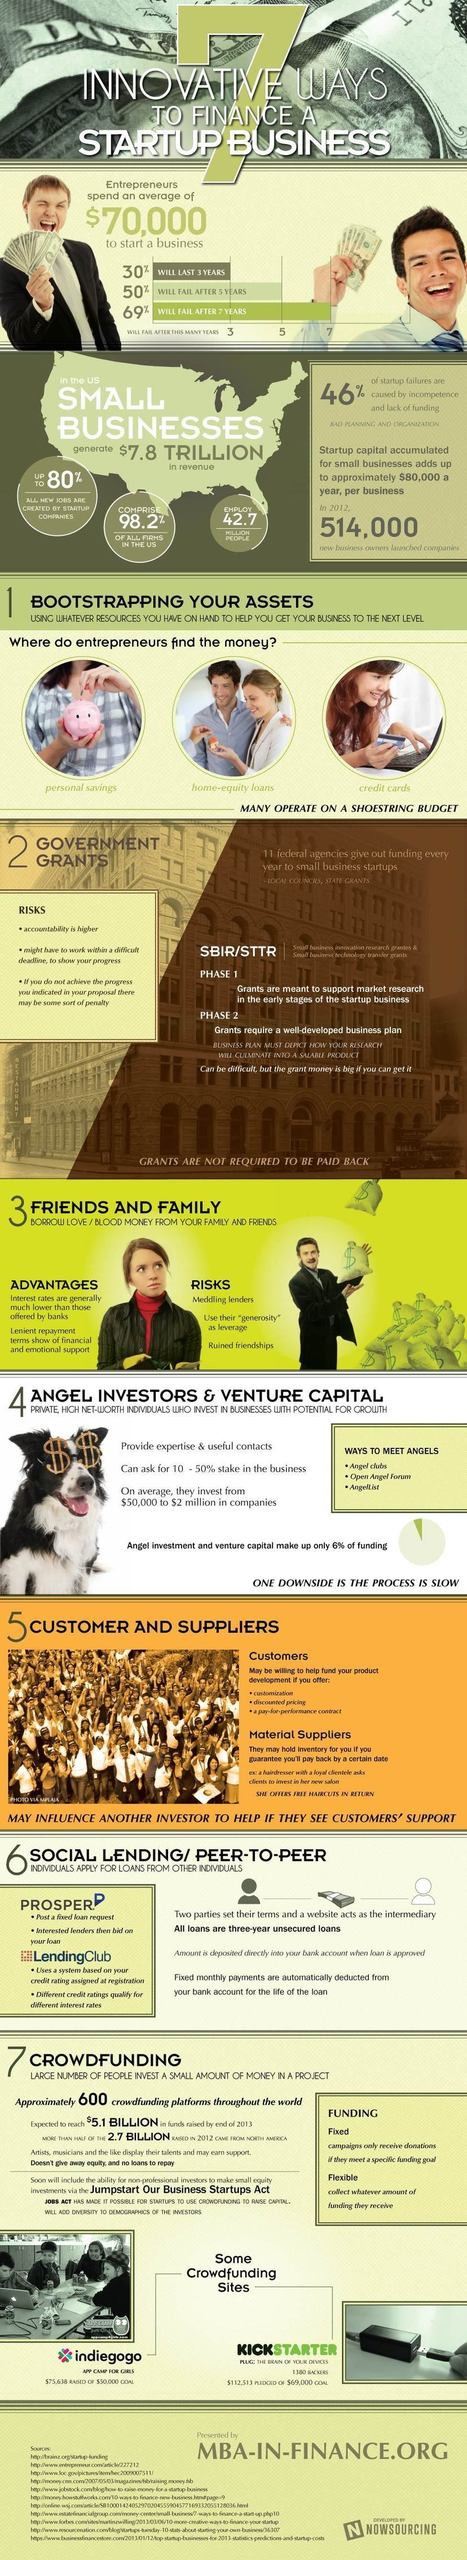 Seven Innovative Ways to Finance a Startup [Infographic] - Business 2 Community | Social Media Marketing | Scoop.it